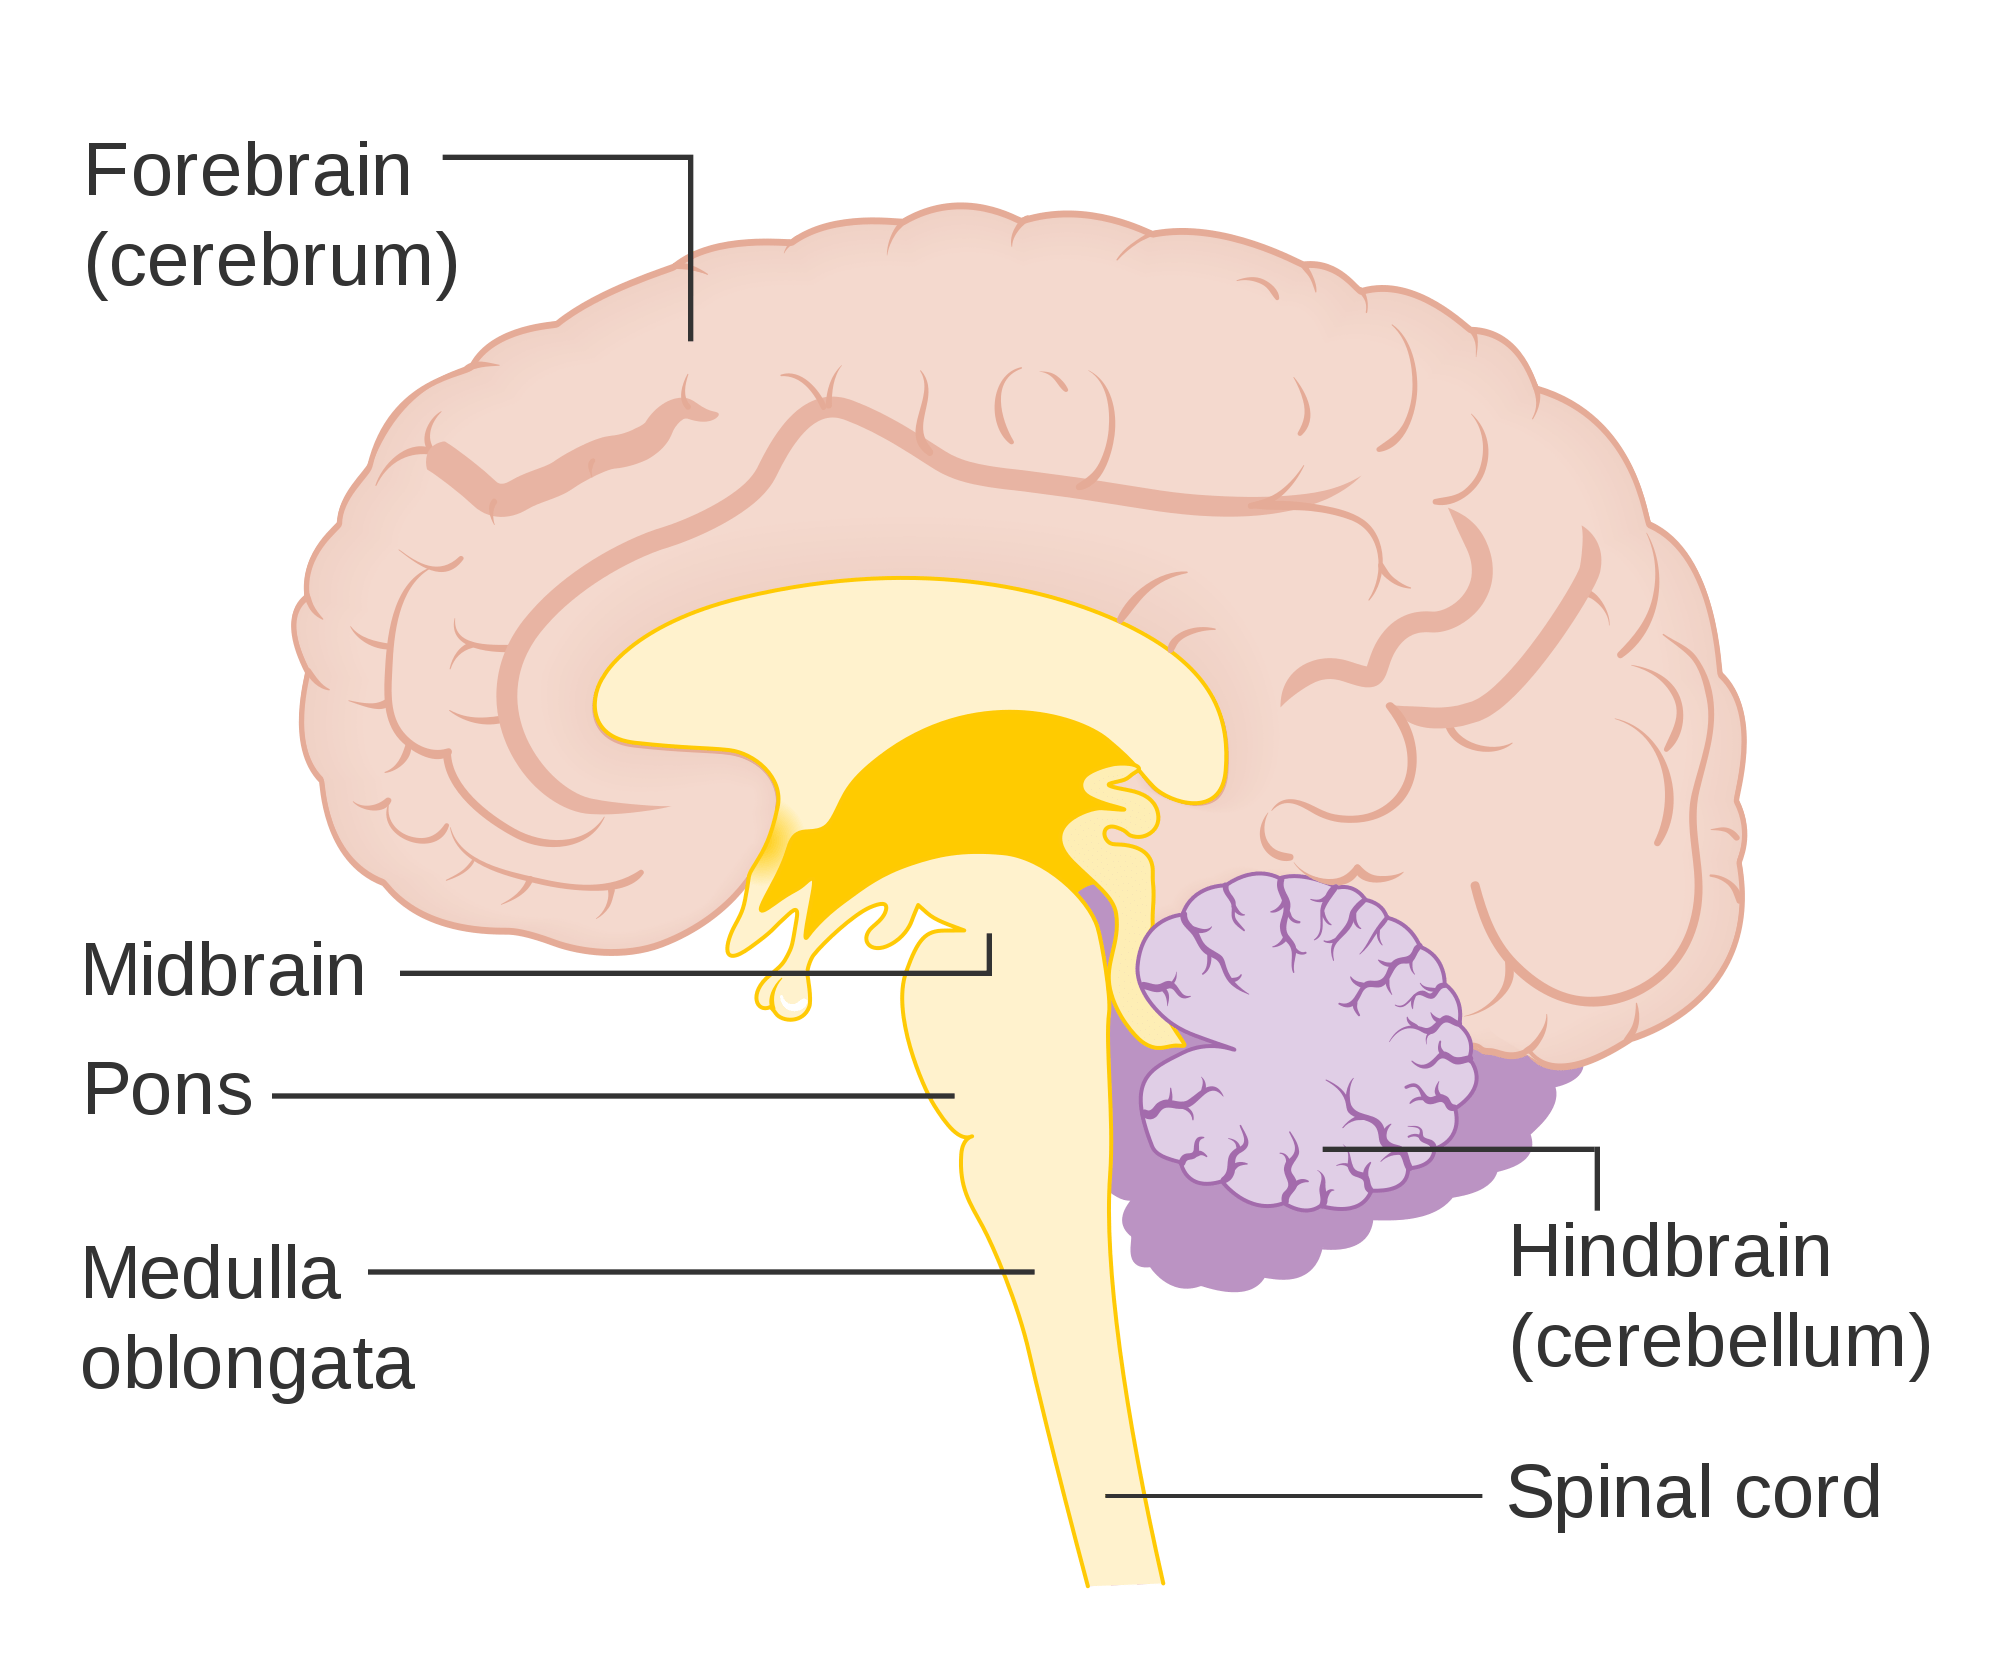 brain diagram pons wiring for light sensor human structure and functions of three main parts